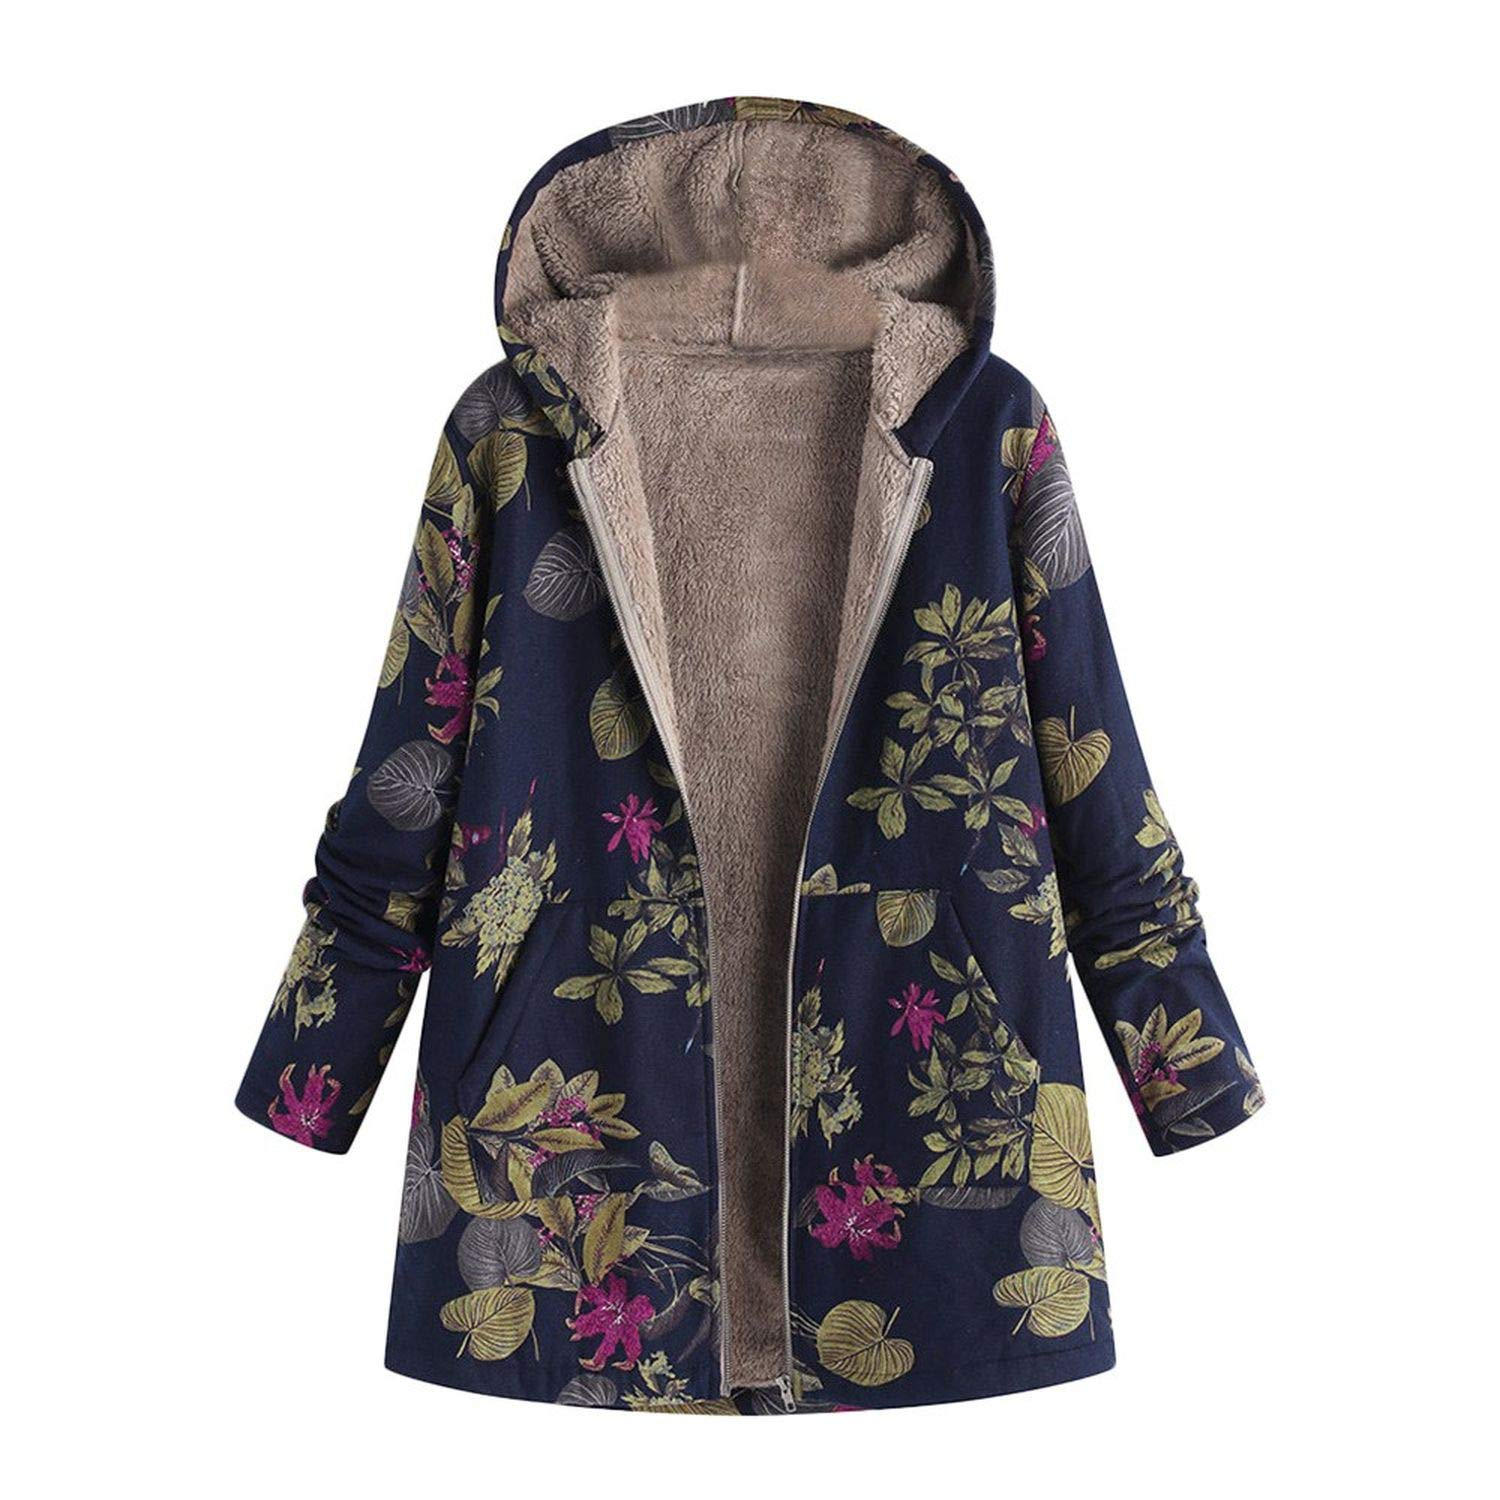 Winter Coat Women 2018 Parka Vintage Floral Print Hooded Warm Oversize Parka Femme Jacket Manteau Femme Hiver at Amazon Womens Coats Shop